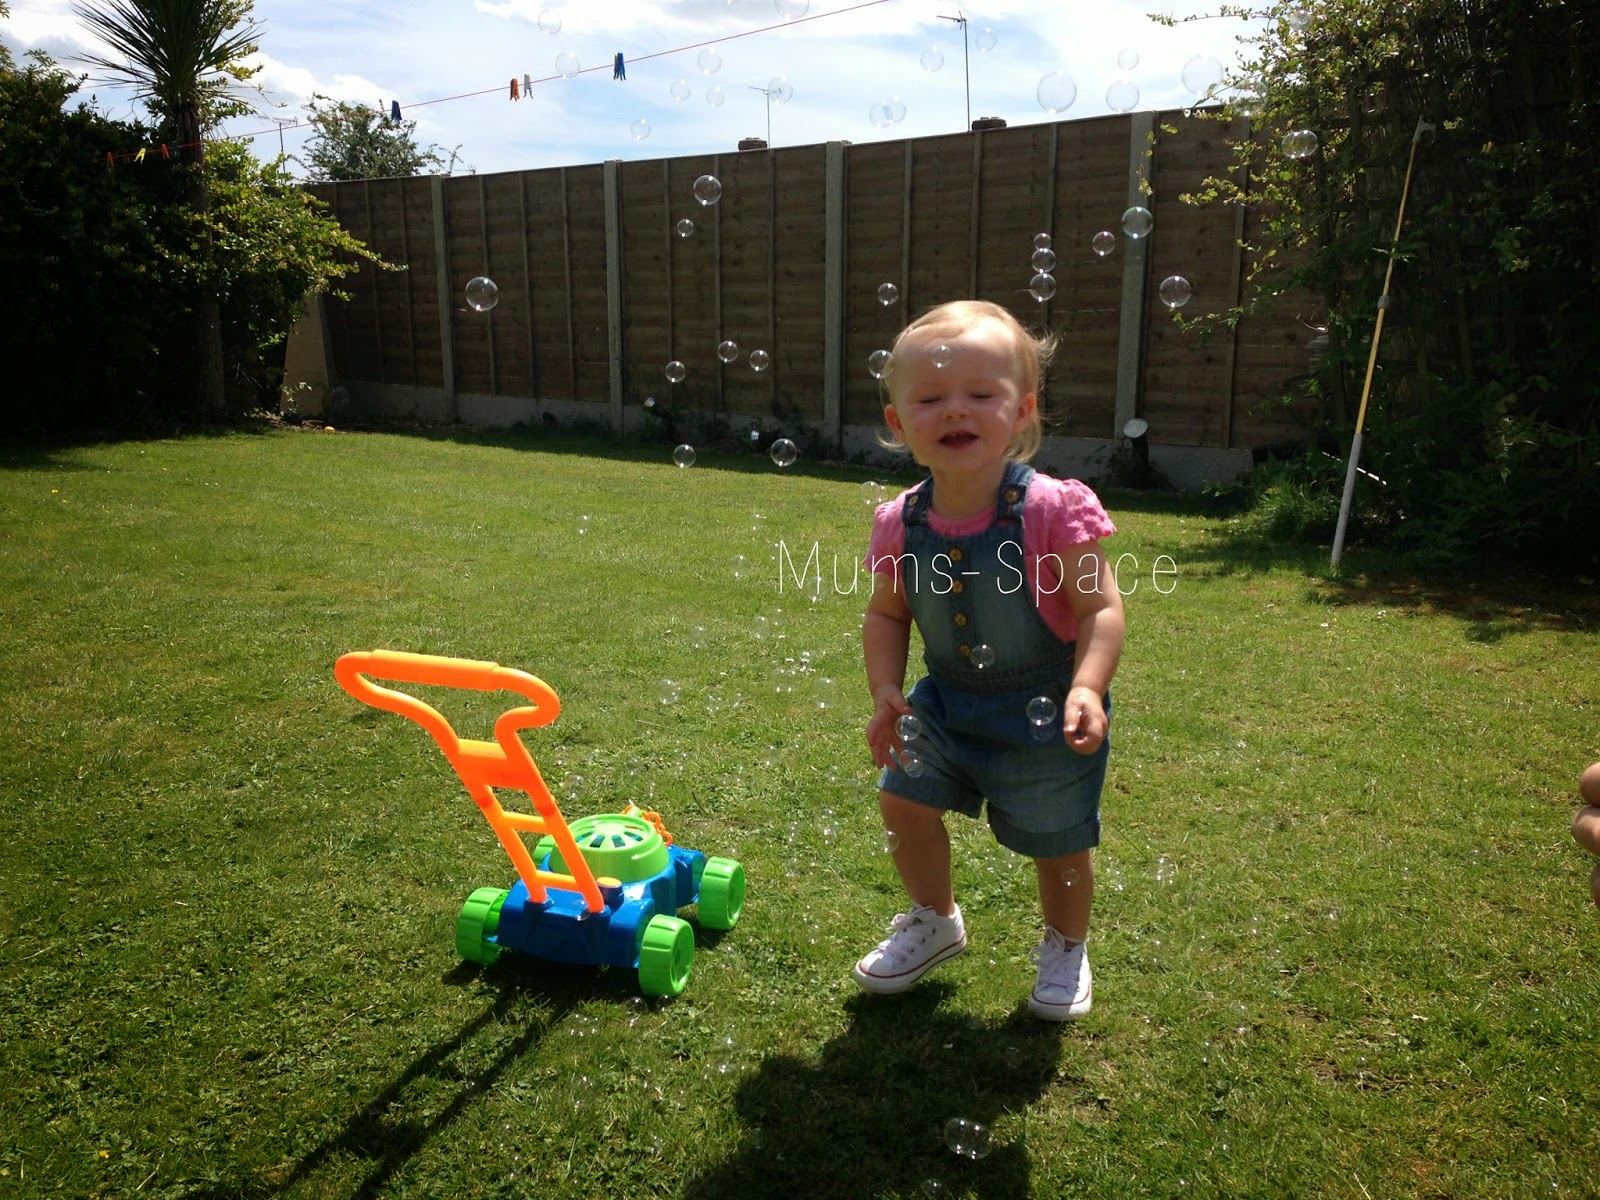 Fascinating Mums Space  July  With Fascinating Look How Happy She Looks Its Amazing Isnt It We Got The Lawn Mower At  Smyths In The Sale For  And Its Doing Great I Was Worried That The  Bubbles  With Captivating Nearest Tube Station To Hatton Garden London Also Garden Table And Chairs Gumtree In Addition Terra Firma Gardens And Artificial Flowers For Garden As Well As Gardeners World Live Voucher Code Additionally Sheffield Botanical Gardens From Mumsspacecouk With   Fascinating Mums Space  July  With Captivating Look How Happy She Looks Its Amazing Isnt It We Got The Lawn Mower At  Smyths In The Sale For  And Its Doing Great I Was Worried That The  Bubbles  And Fascinating Nearest Tube Station To Hatton Garden London Also Garden Table And Chairs Gumtree In Addition Terra Firma Gardens From Mumsspacecouk